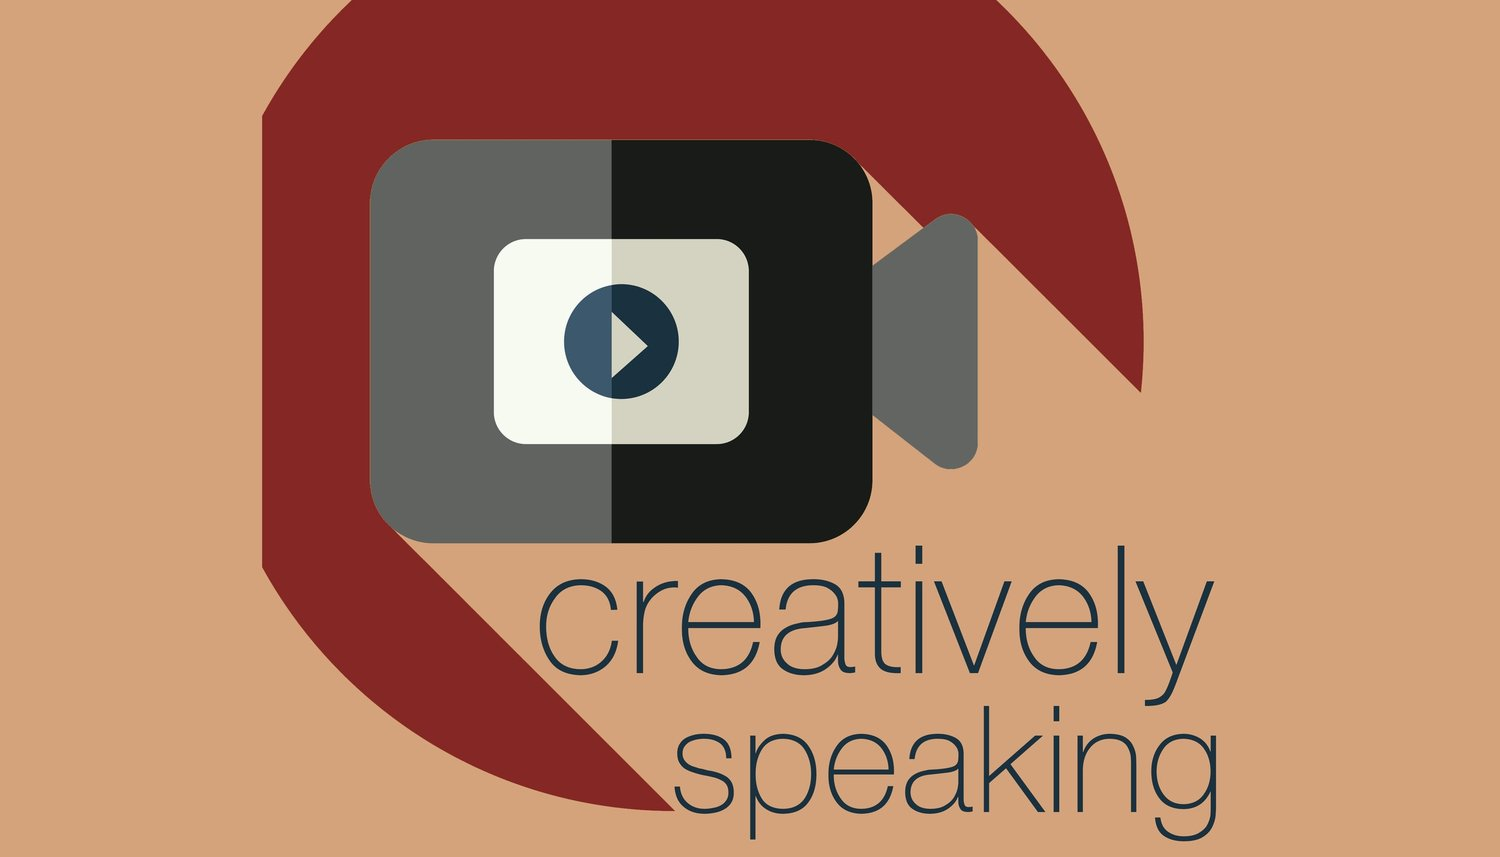 Creative Speaking Logo.jpeg